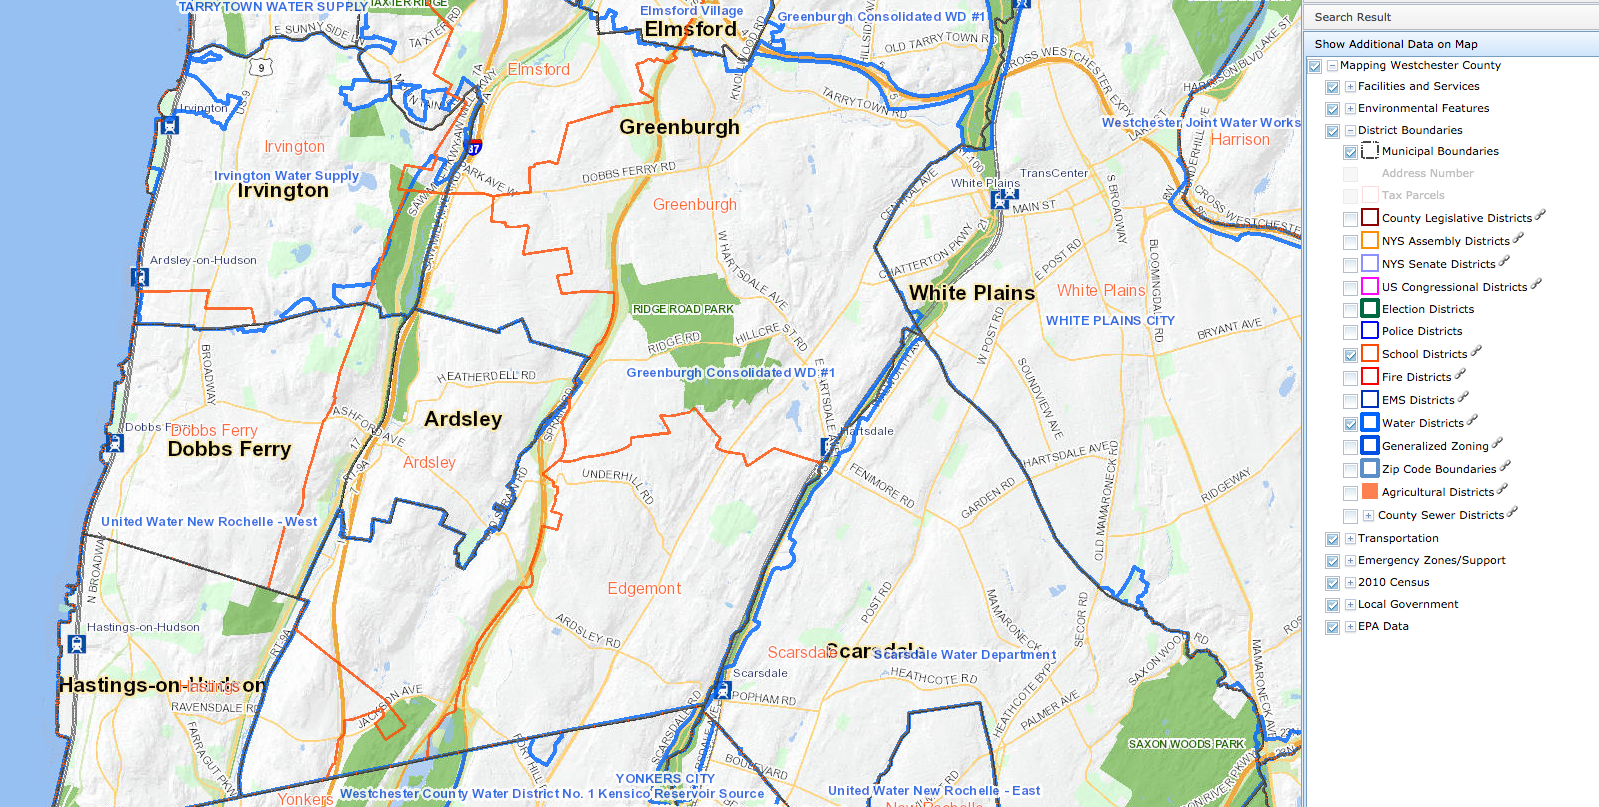 Edgemont is entirely contained by the Greenburgh Consolidated Water District 1. Source: Westchester GIS